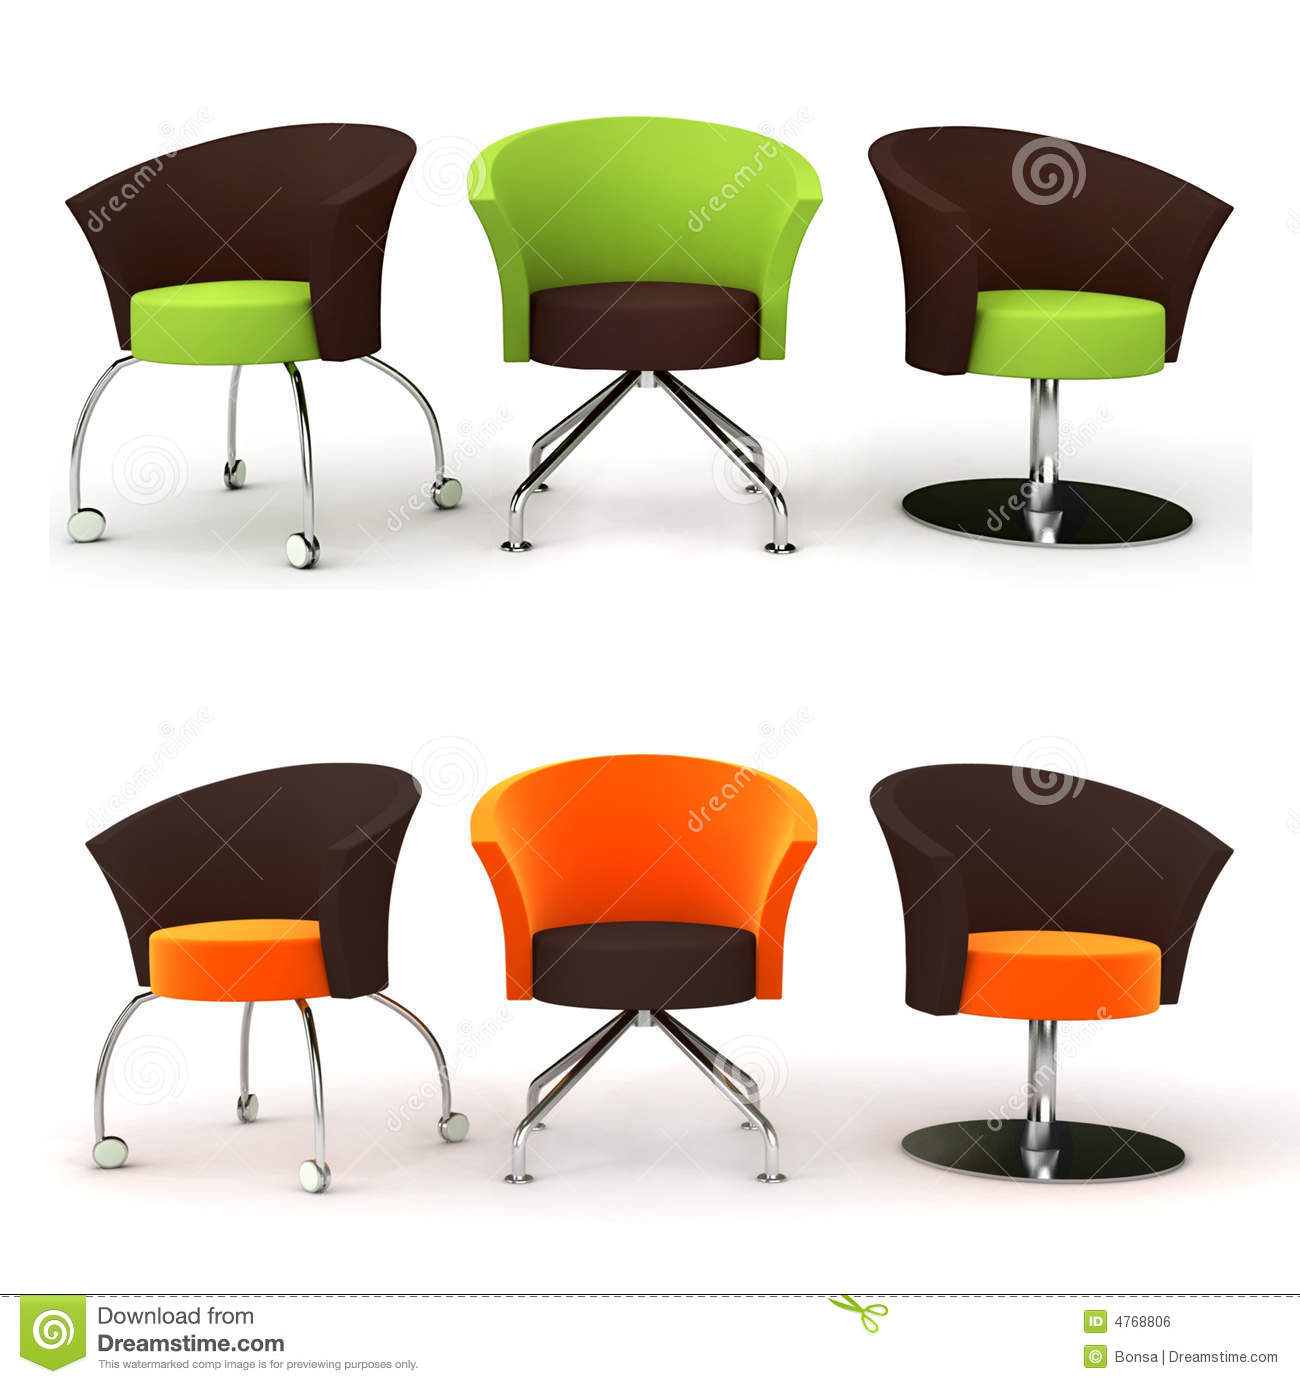 Funny Chairs Royalty Free Stock Image Image 4768806 : funny chairs 4768806 from www.dreamstime.com size 1300 x 1384 jpeg 105kB